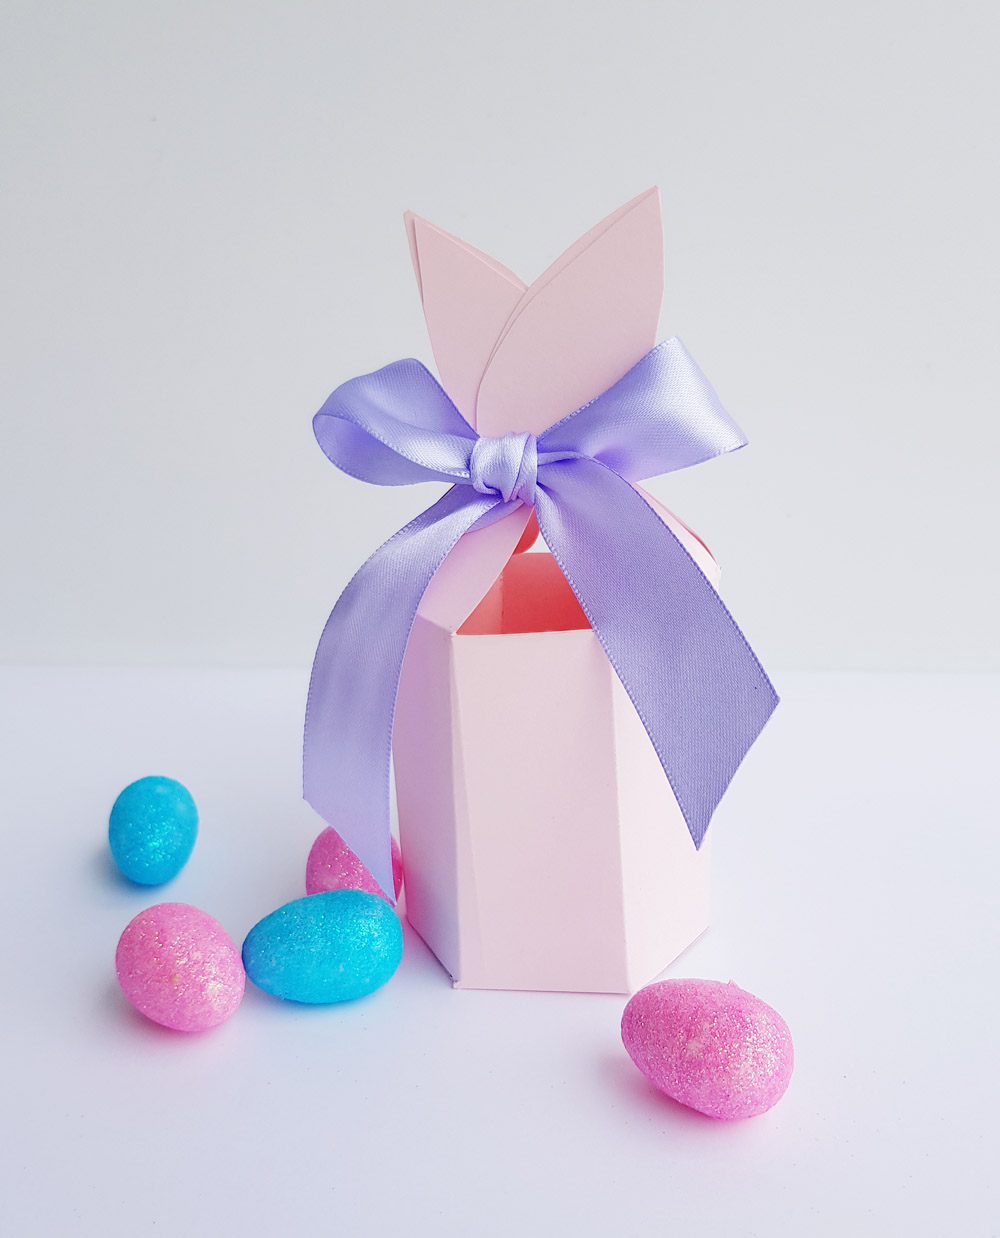 Free bunny ears gift box printable for easter now thats peachy for each easter party guest or the perfect size for small gifts for the kids school friends teacher or work colleagues also a easy craft project for negle